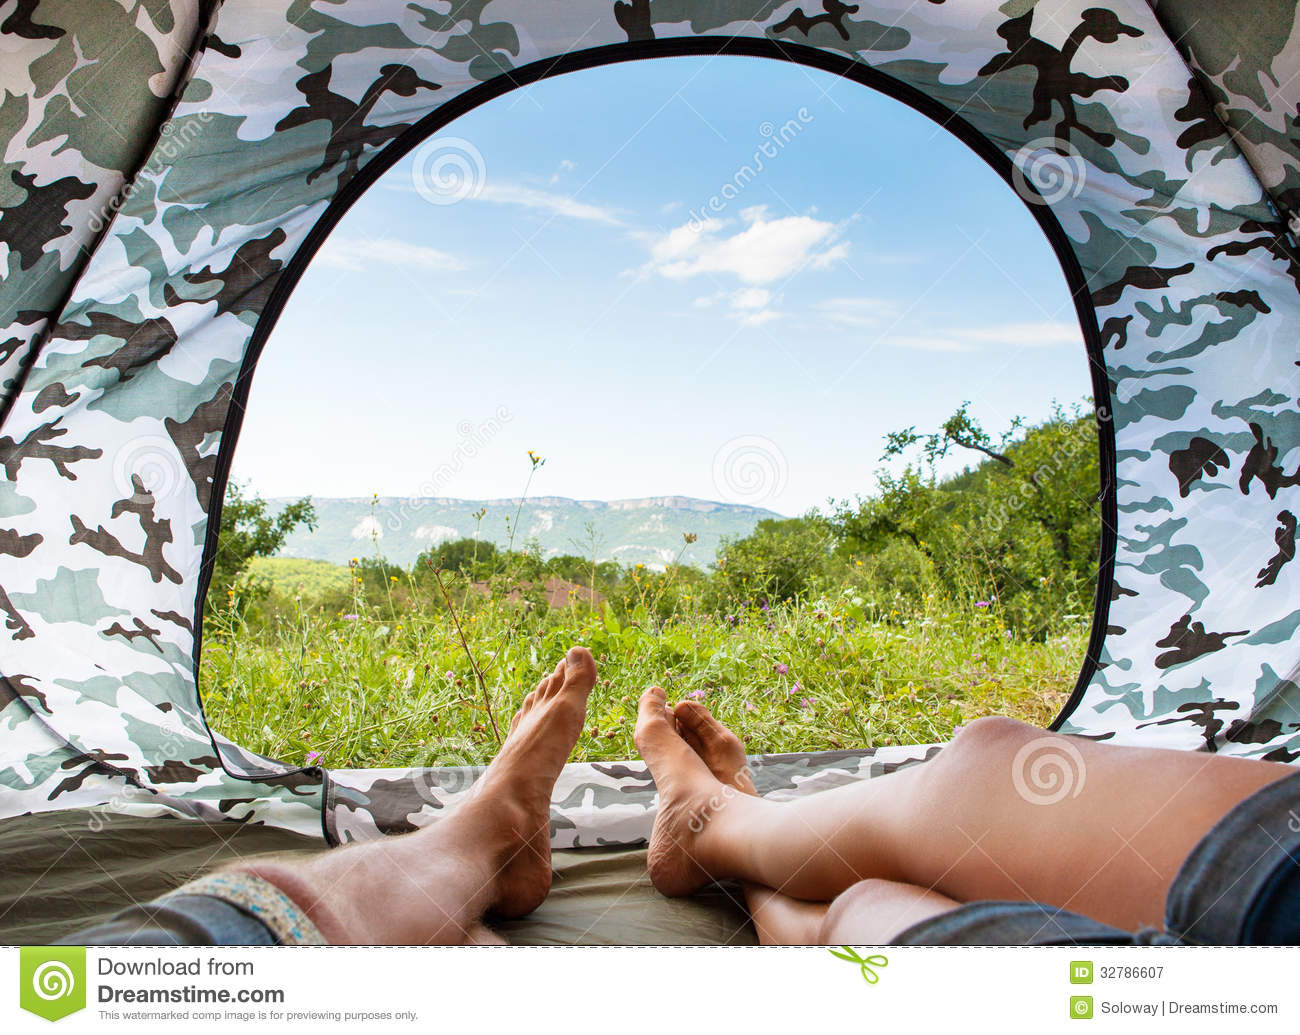 Royalty-Free Stock Photo & Paradise in tent stock image. Image of landscape couple - 32786607